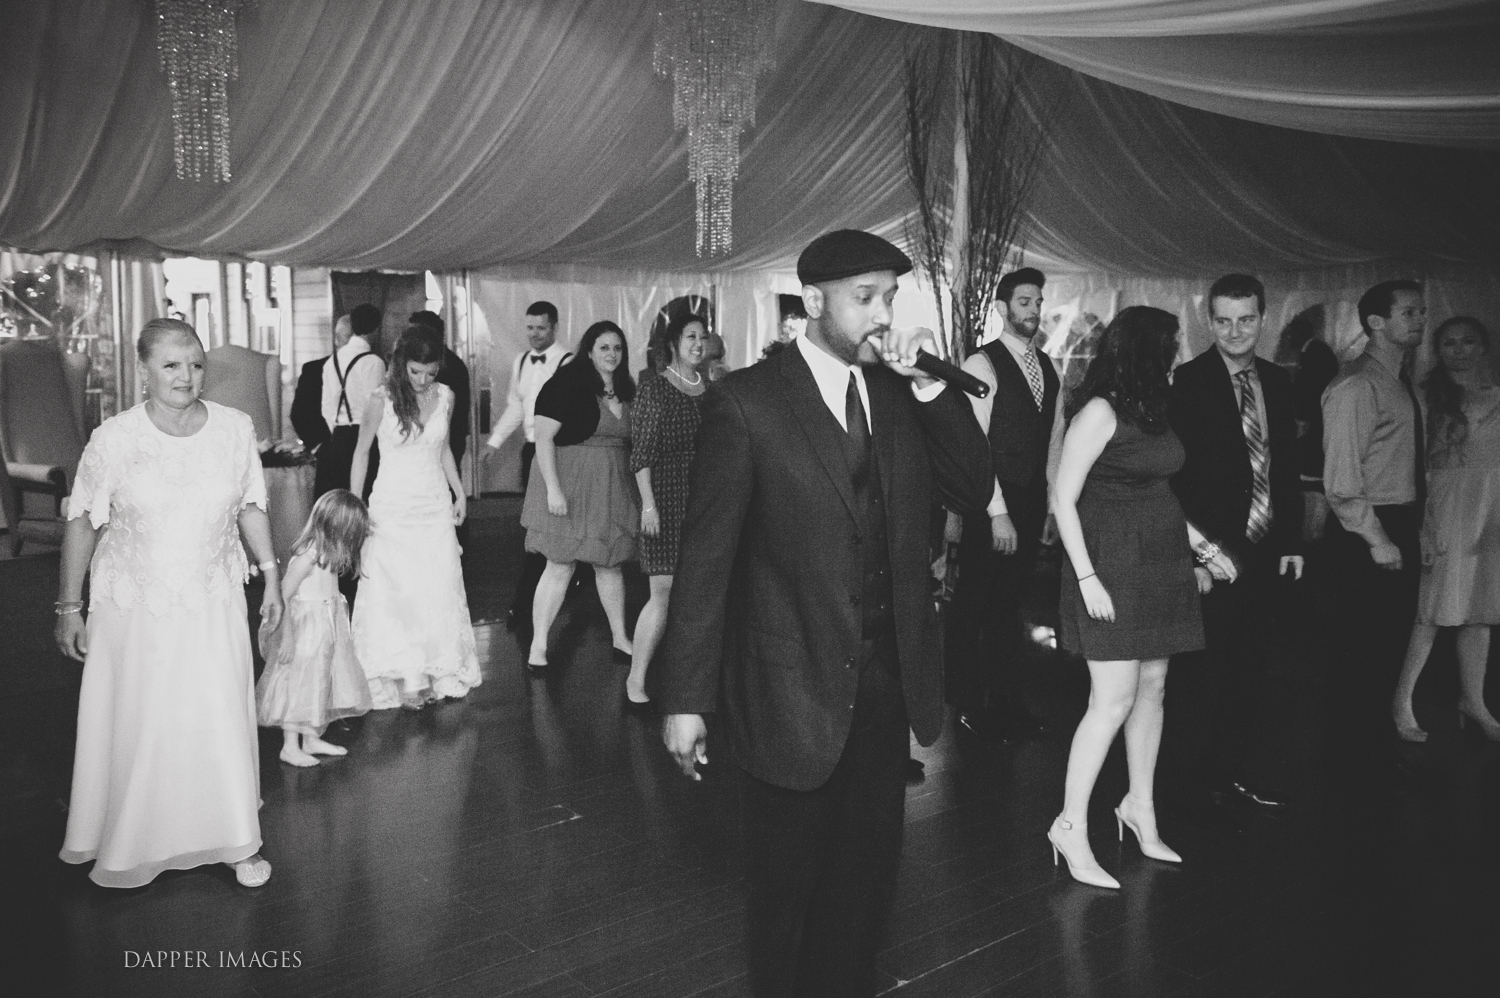 MY DJs San Diego DJ Prices Photo Booths Wedding DJs